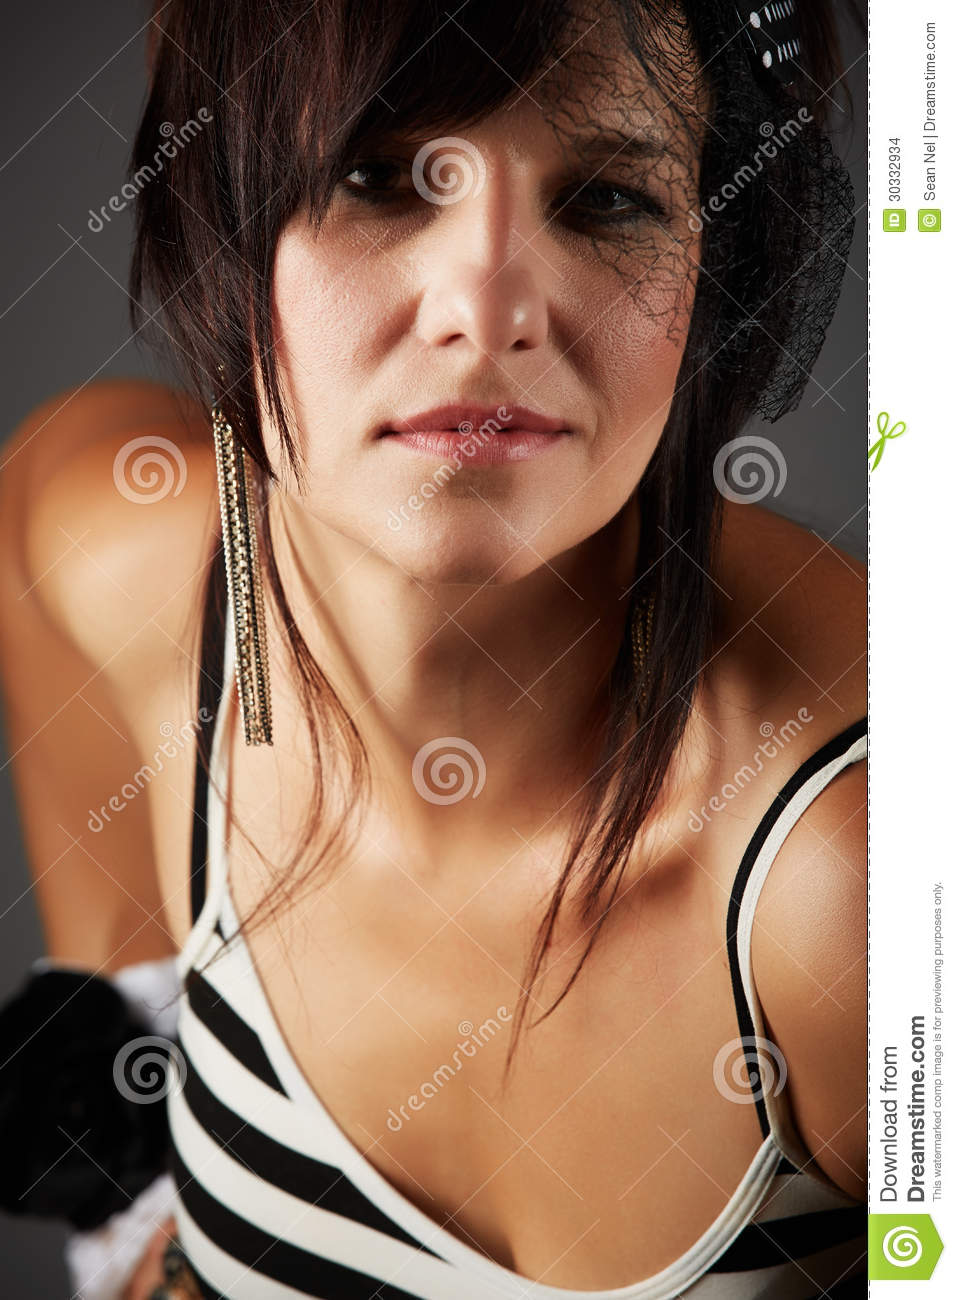 beautiful woman stock photo. image of white, shoulder - 30332934